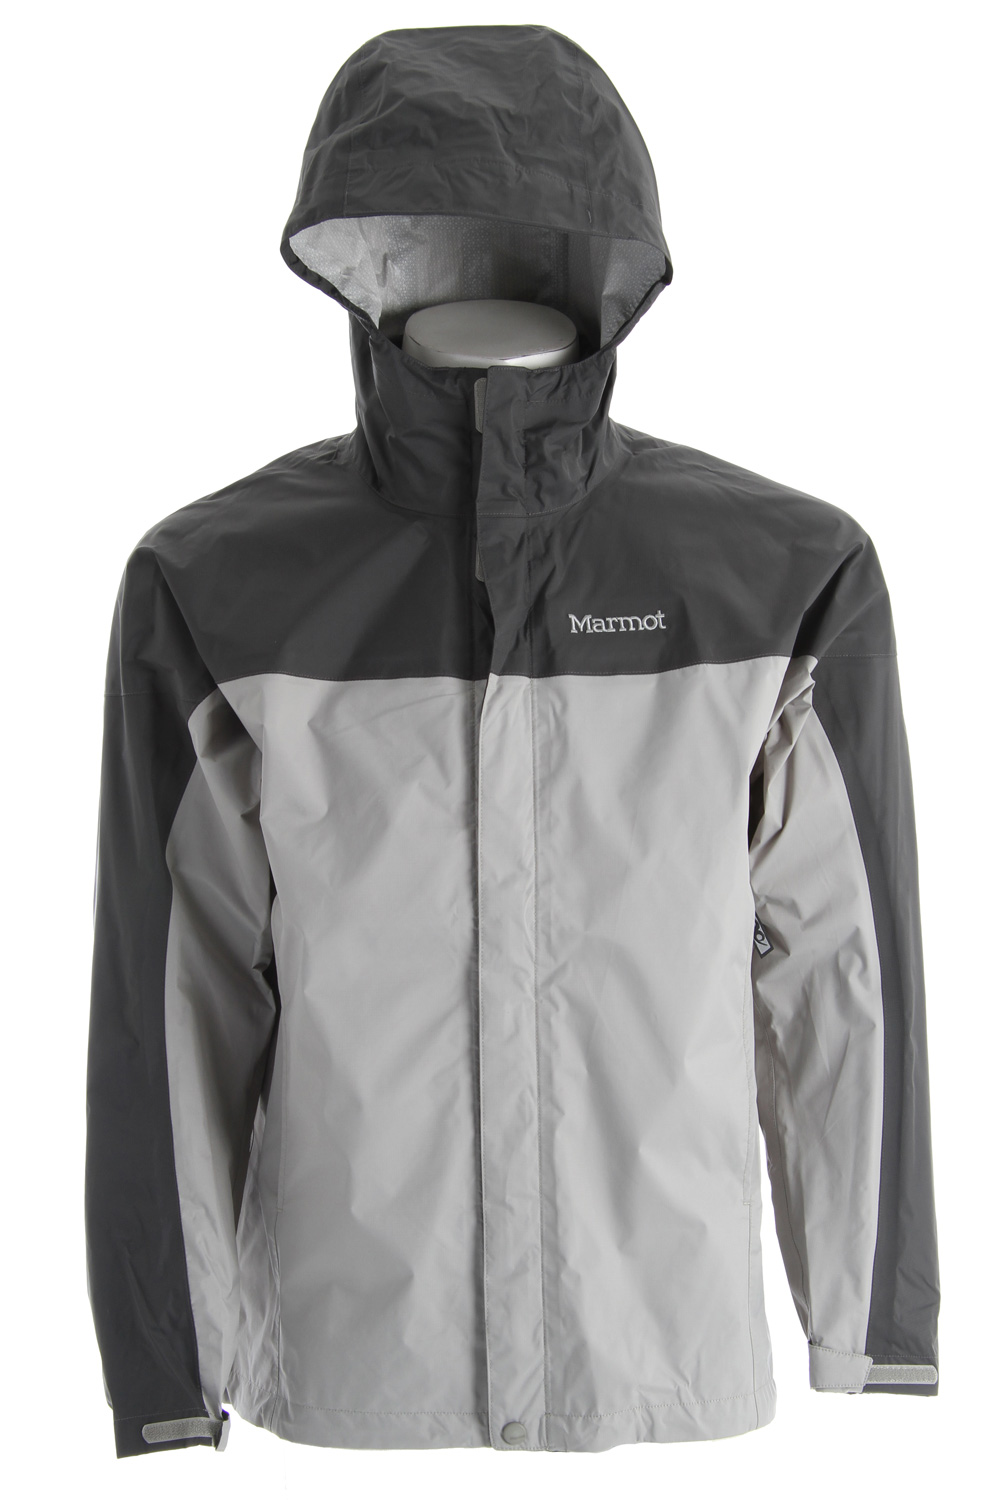 Key Features of the Marmot Precip Jacket: PreCip® Dry Touch Technology, Waterproof/Breathable 100% Seam Taped Full Visibility Roll-Up Hood with Integral Collar PitZips™ Pack Pockets™ Double Storm Flap Over Zipper with Snap/Velcro® Closure Elastic Draw Cord Hem DriClime® Lined Chin Guard Angel-Wing Movement™ Weight 0lbs 13.1oz (371.4g) Materials PreCip® 2.5 100% Nylon Ripstop 2.7oz/yd Center Back Length 29in Fit Regular Fit - $69.95